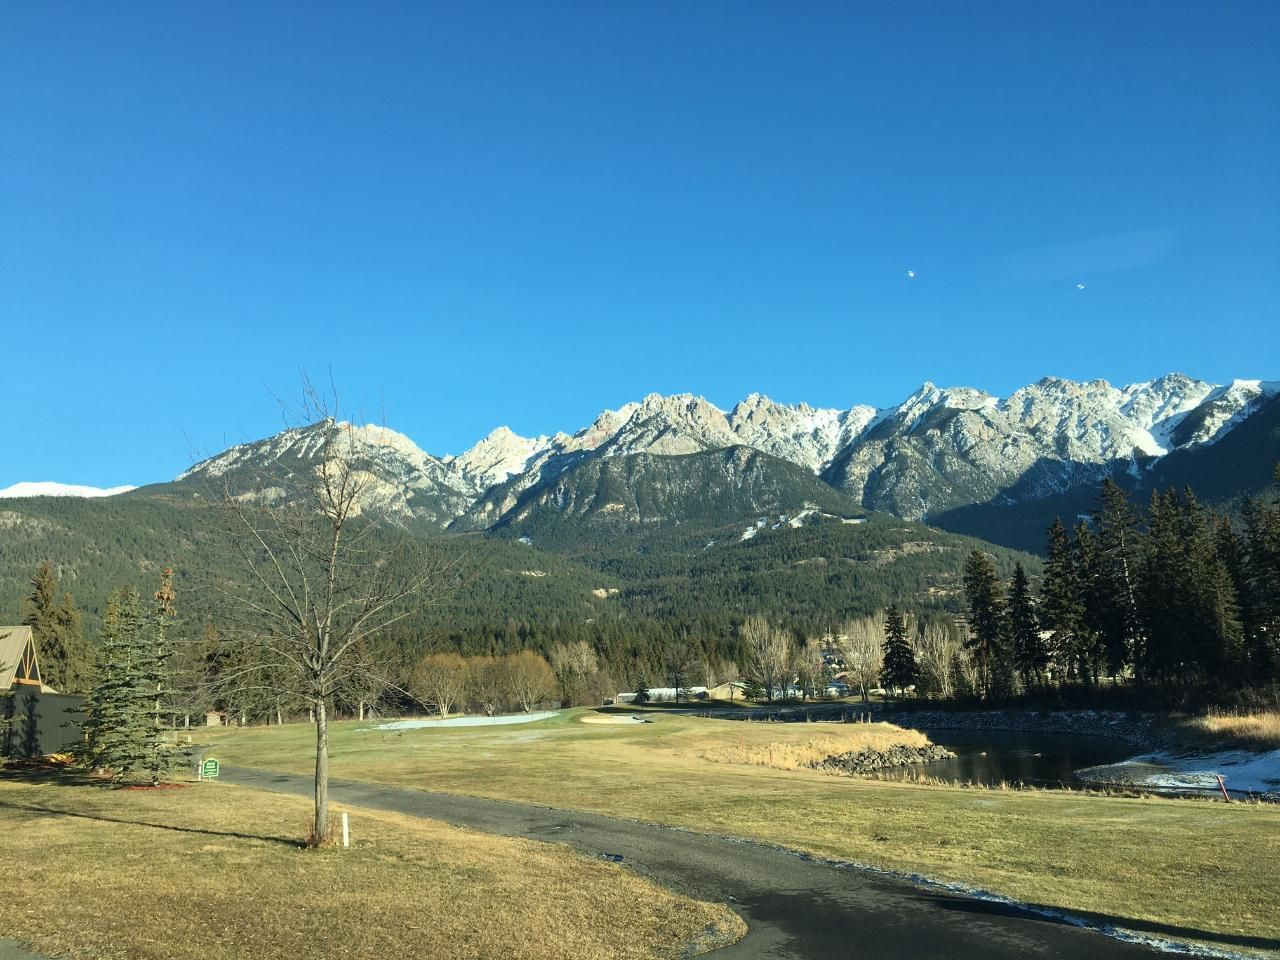 Main Photo: Lot 109 RIVERSIDE DRIVE in Fairmont Hot Springs: Vacant Land for sale : MLS®# 2460173